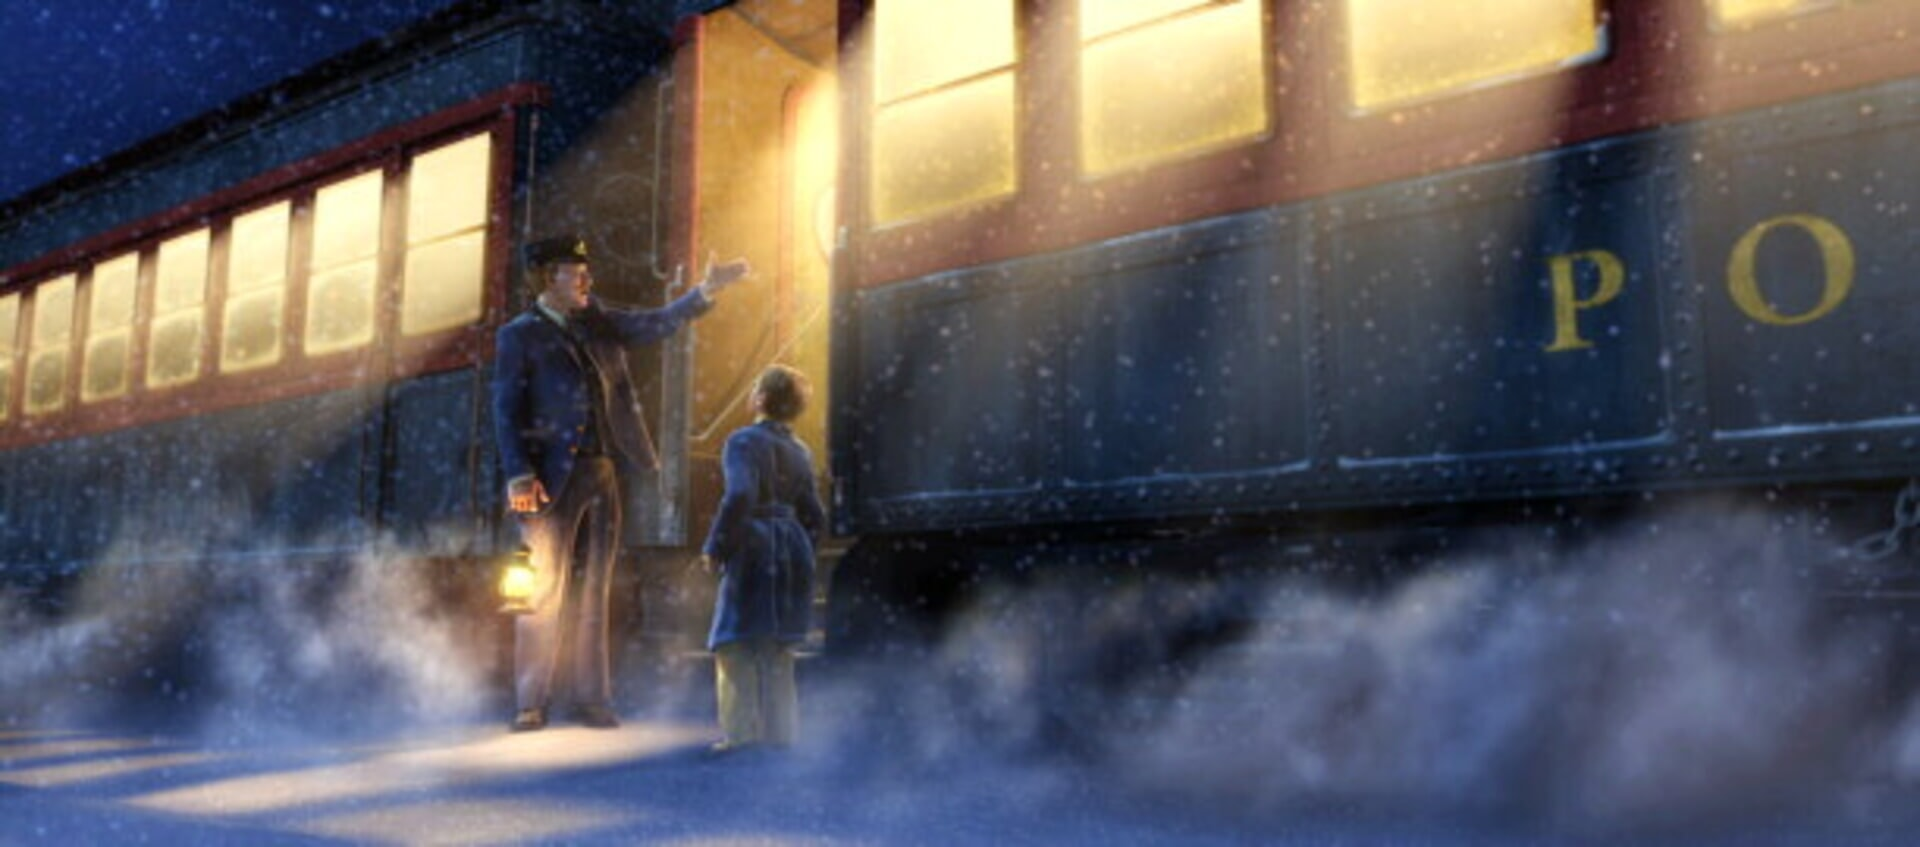 The Polar Express - Image 19